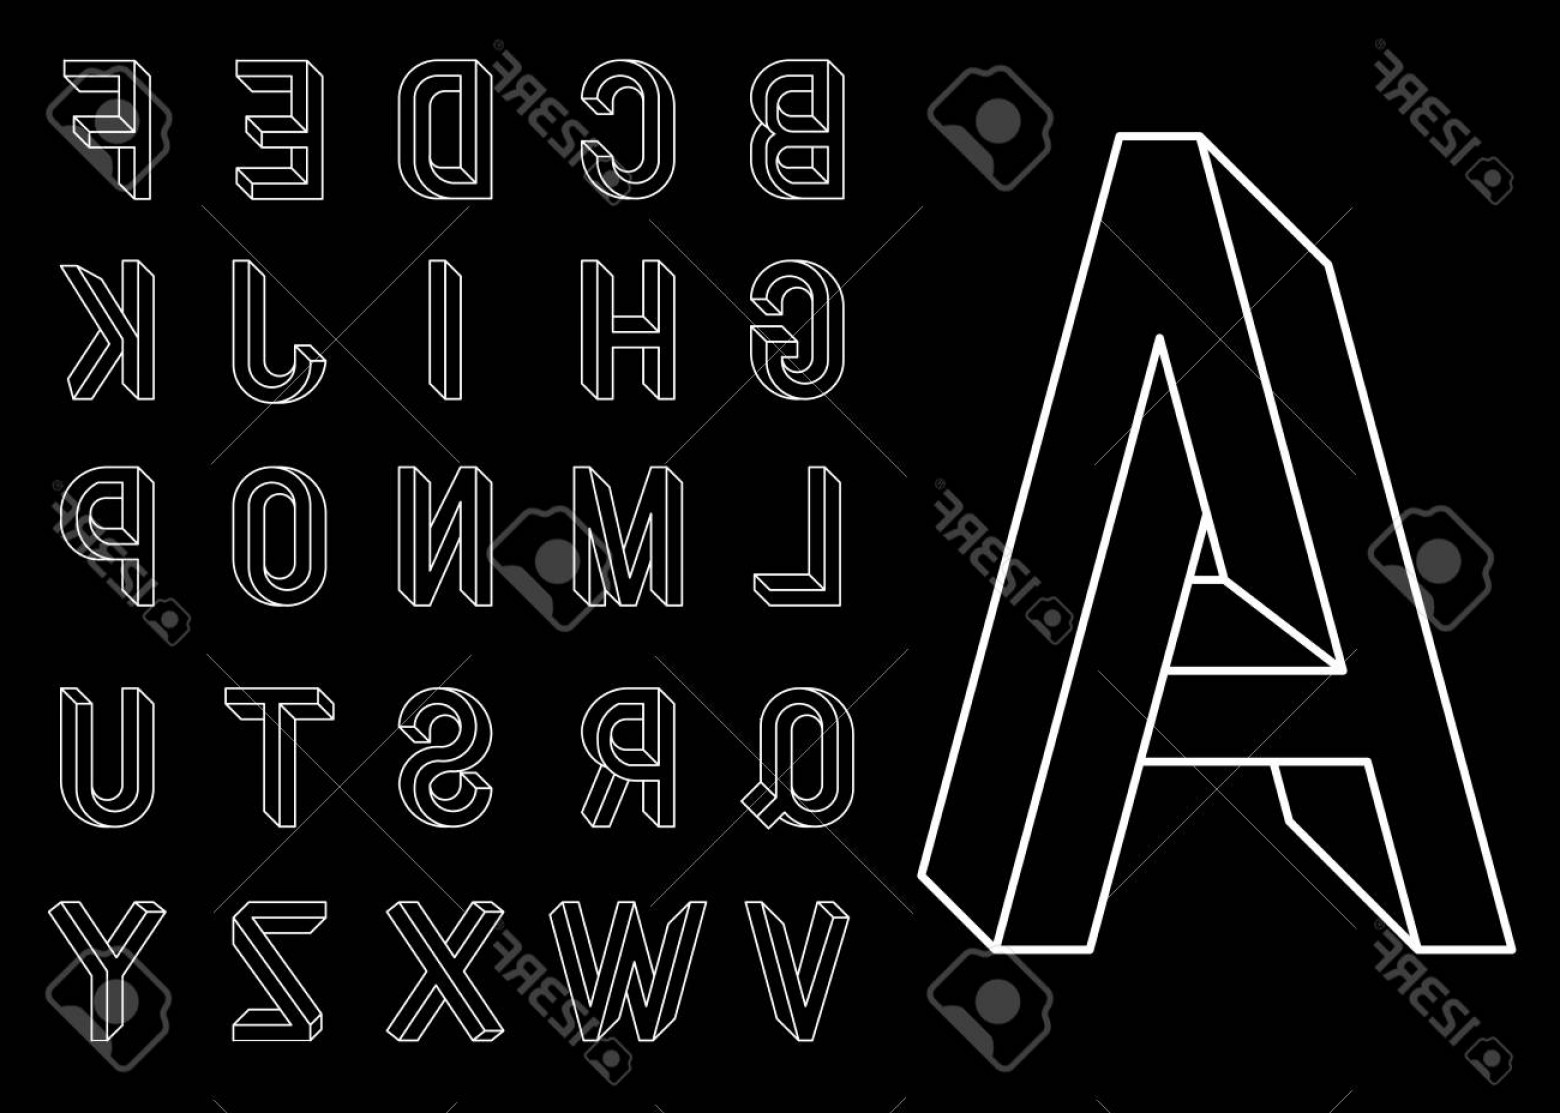 EPS Vector Letters: Photostock Vector Impossible Geometry Letters Set Of Vector Letters Constructed On The Basis Of The Isometric View Low